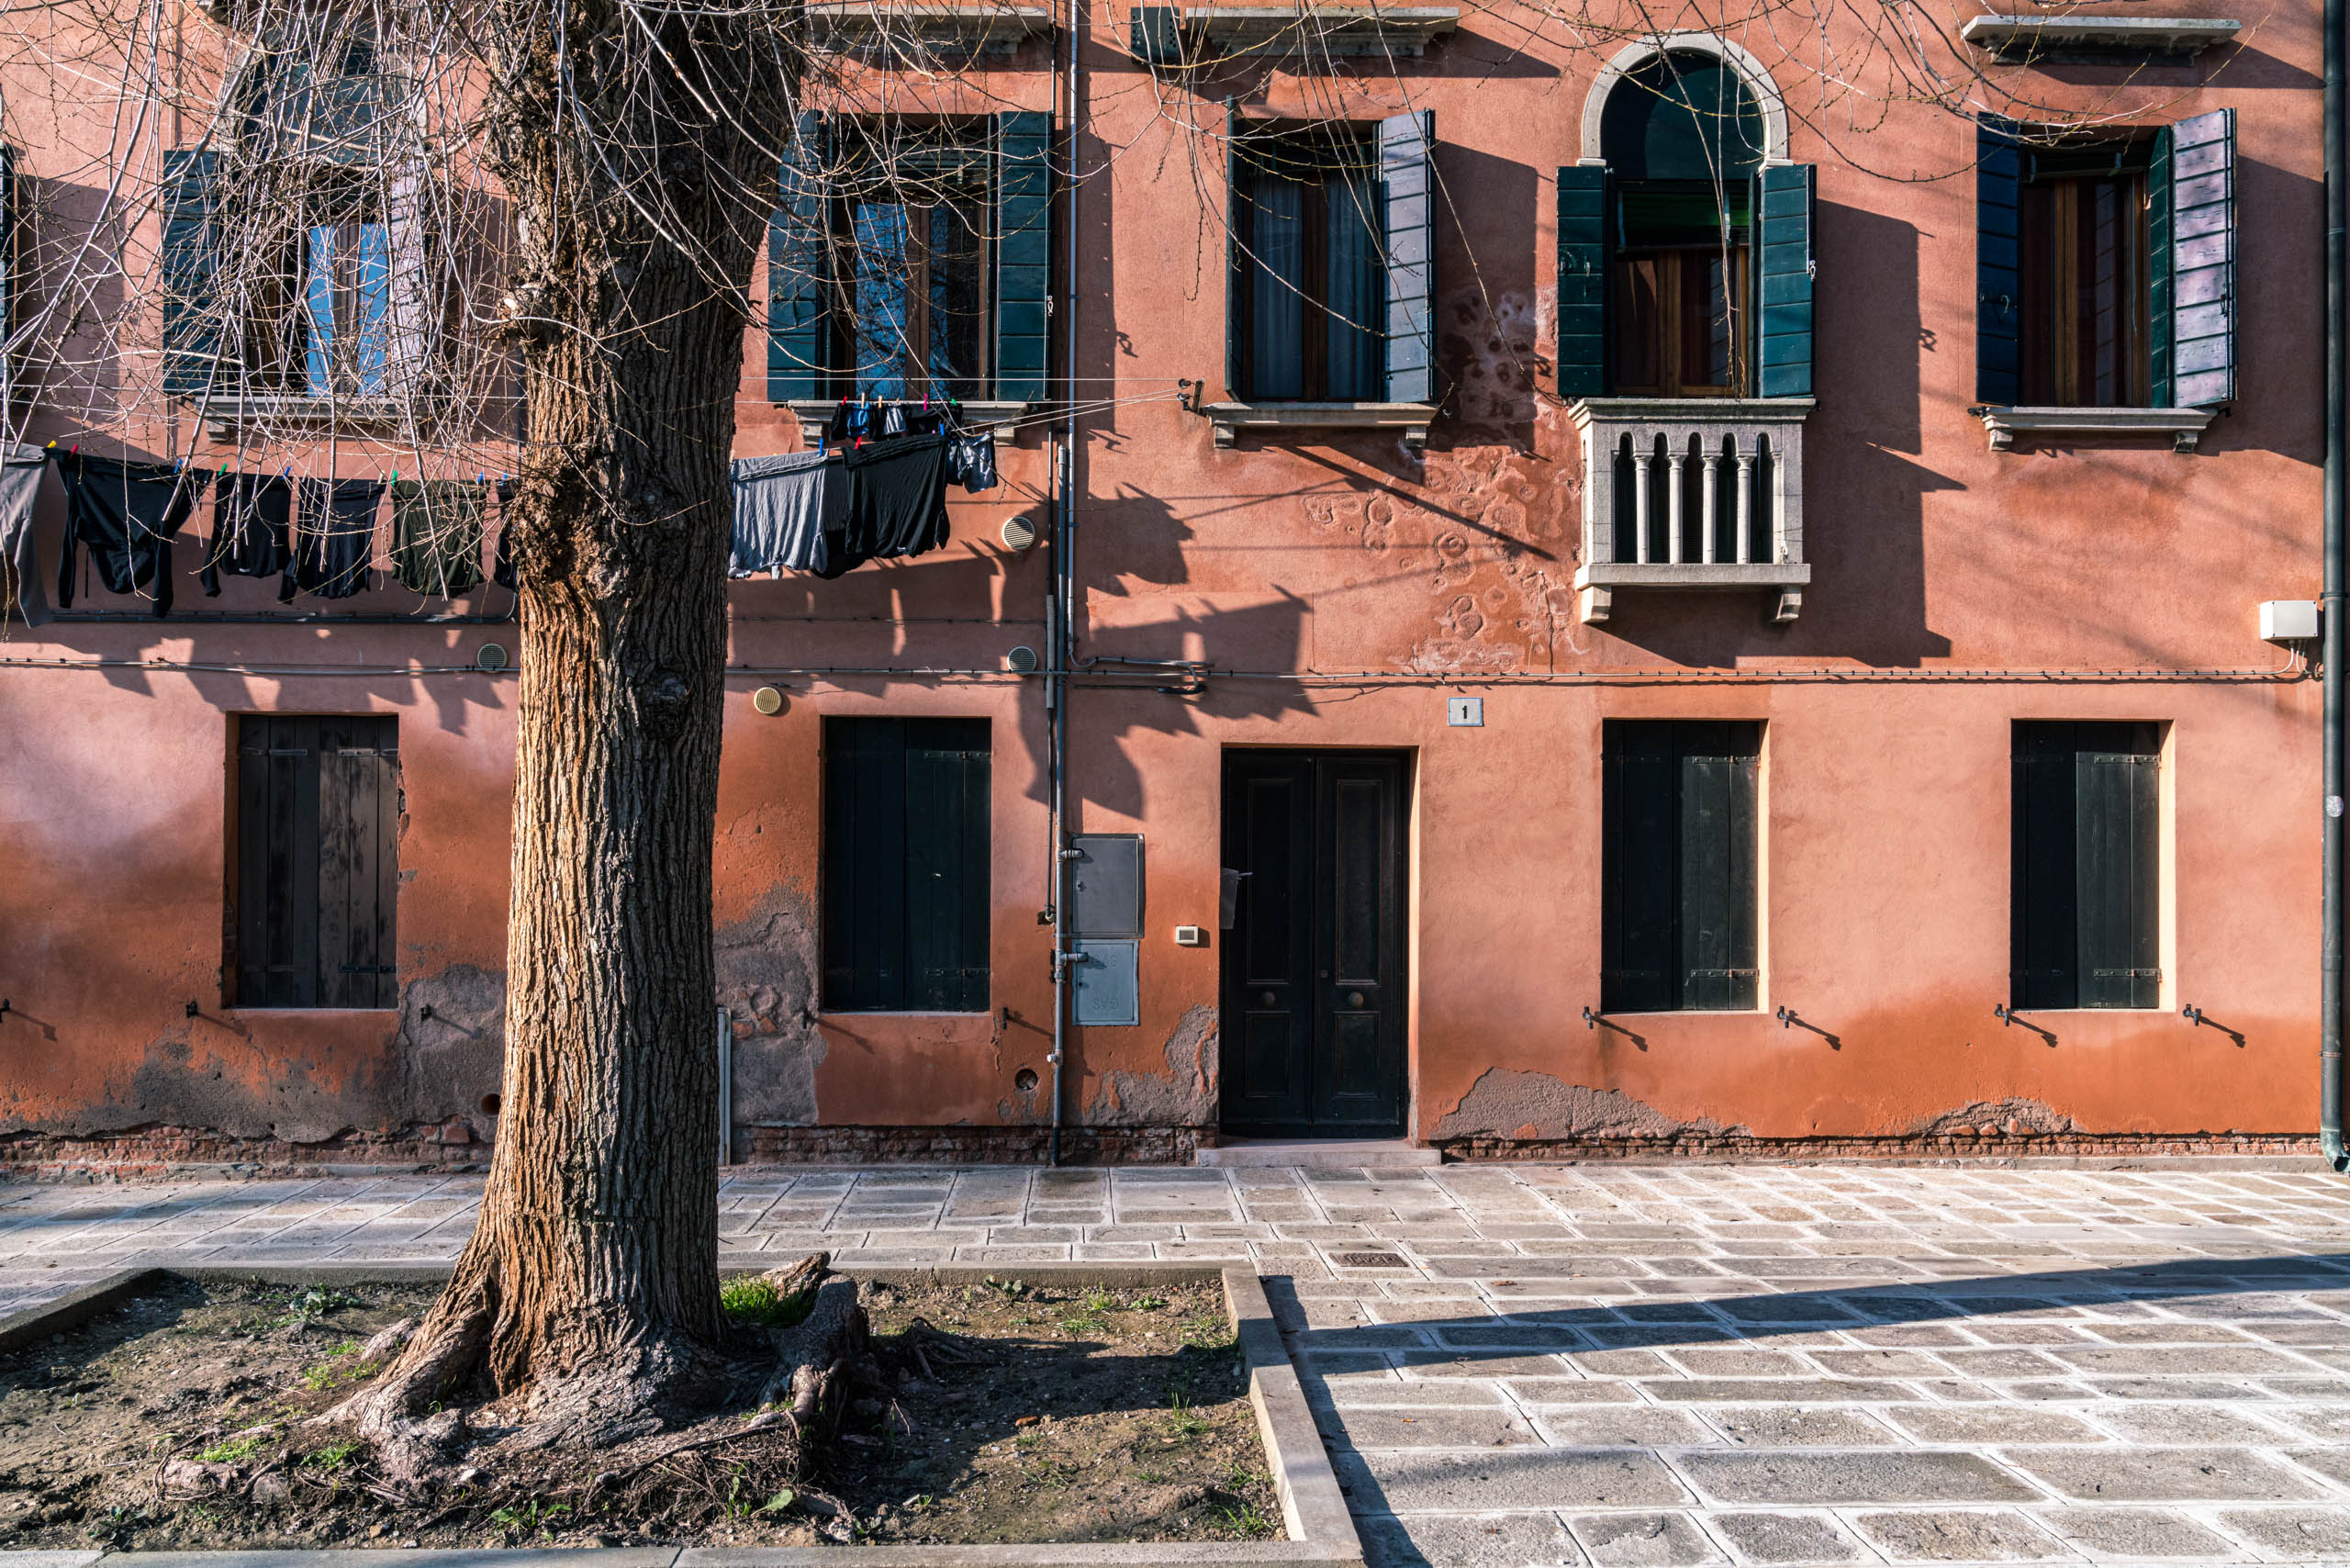 Travel and street photography of Murano and Venice or Venezia, Italy made by New York photographer Mary Catherine Messner (mcmessner).